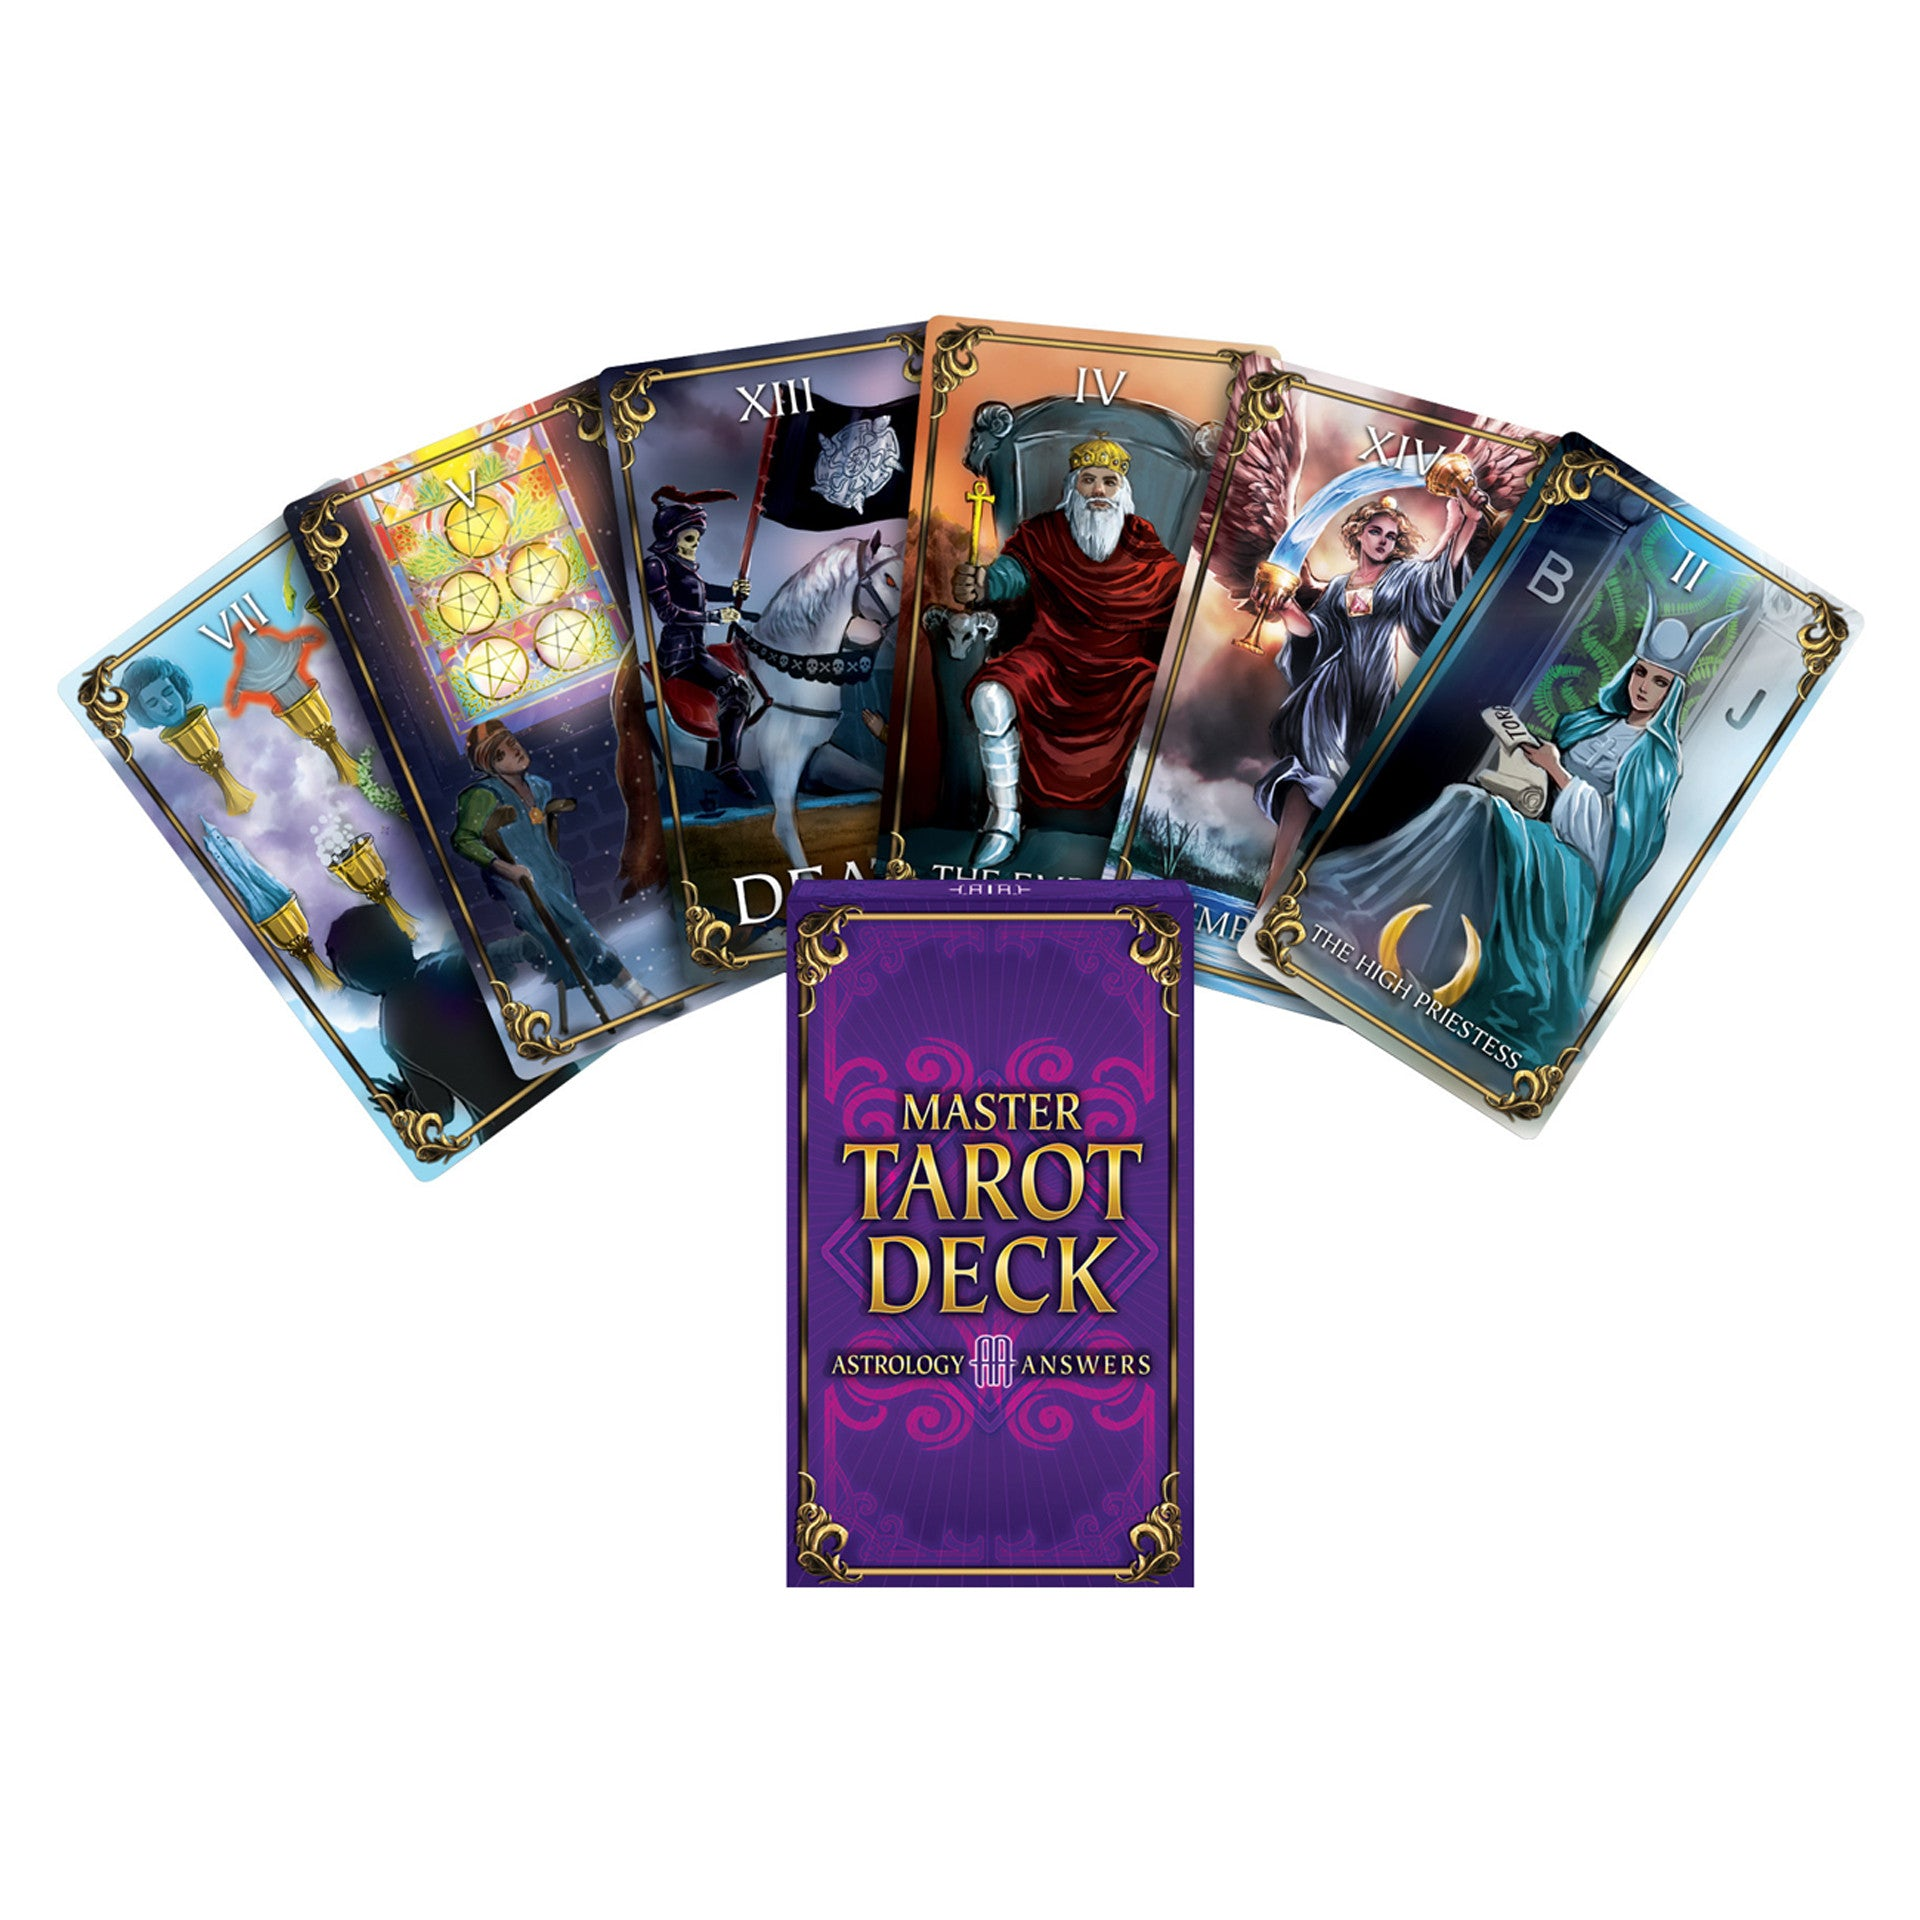 Master Tarot Deck - Ships Within 24 Hours.